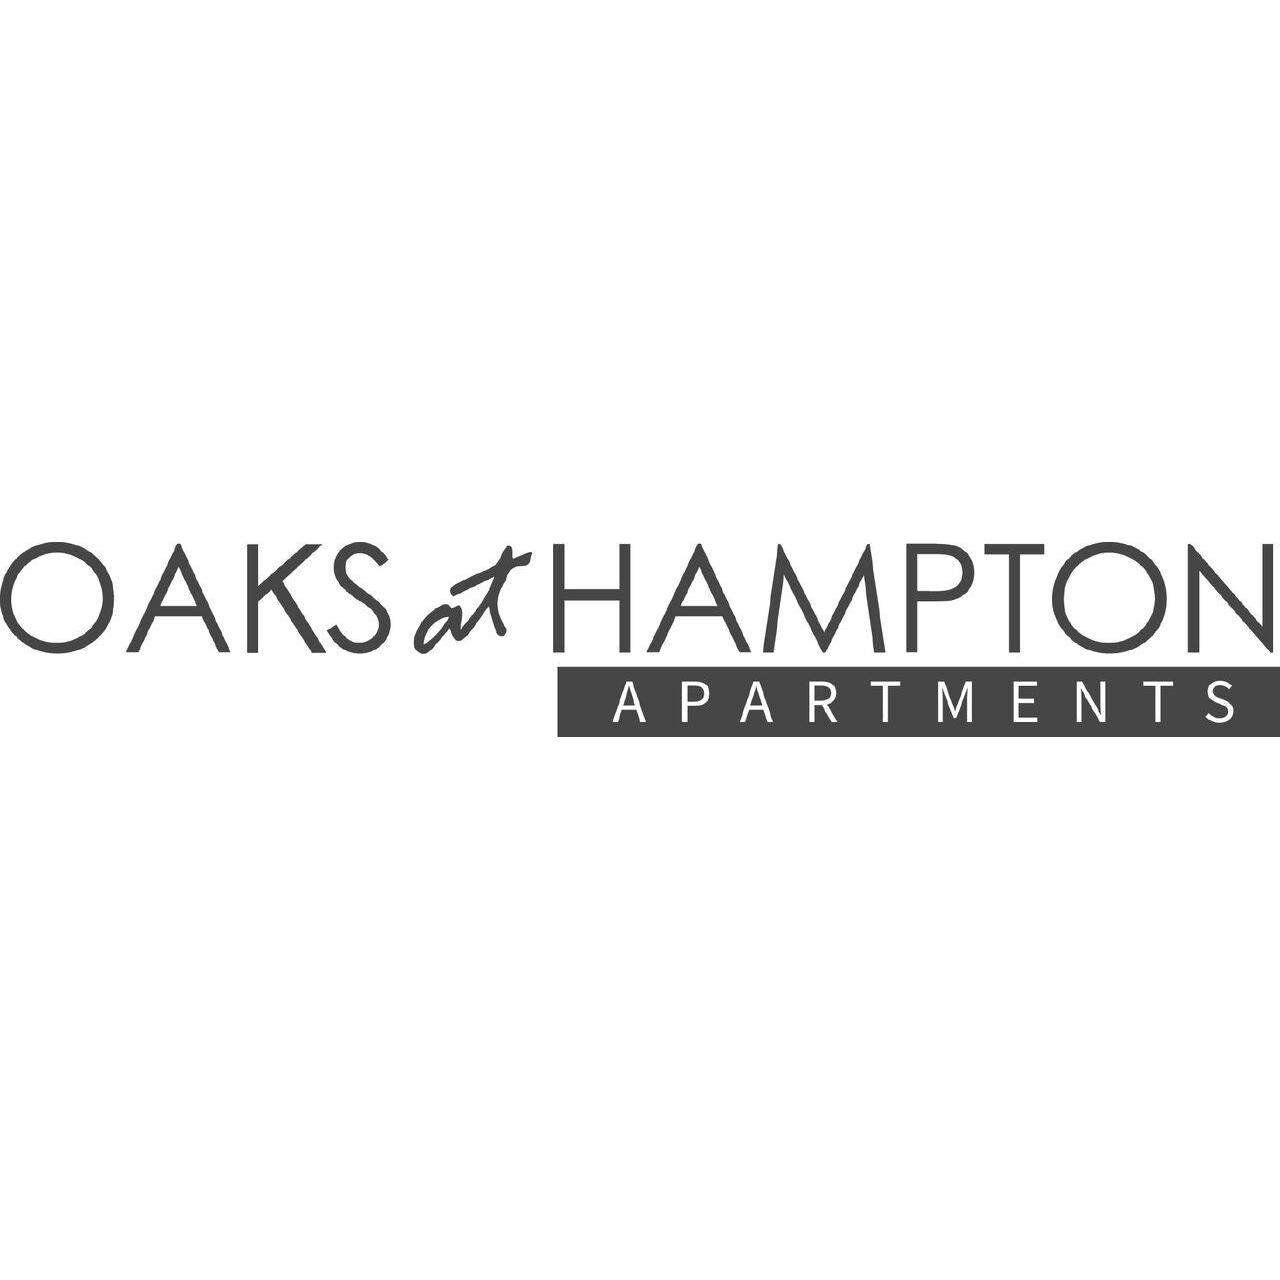 Oaks at Hampton Apartments